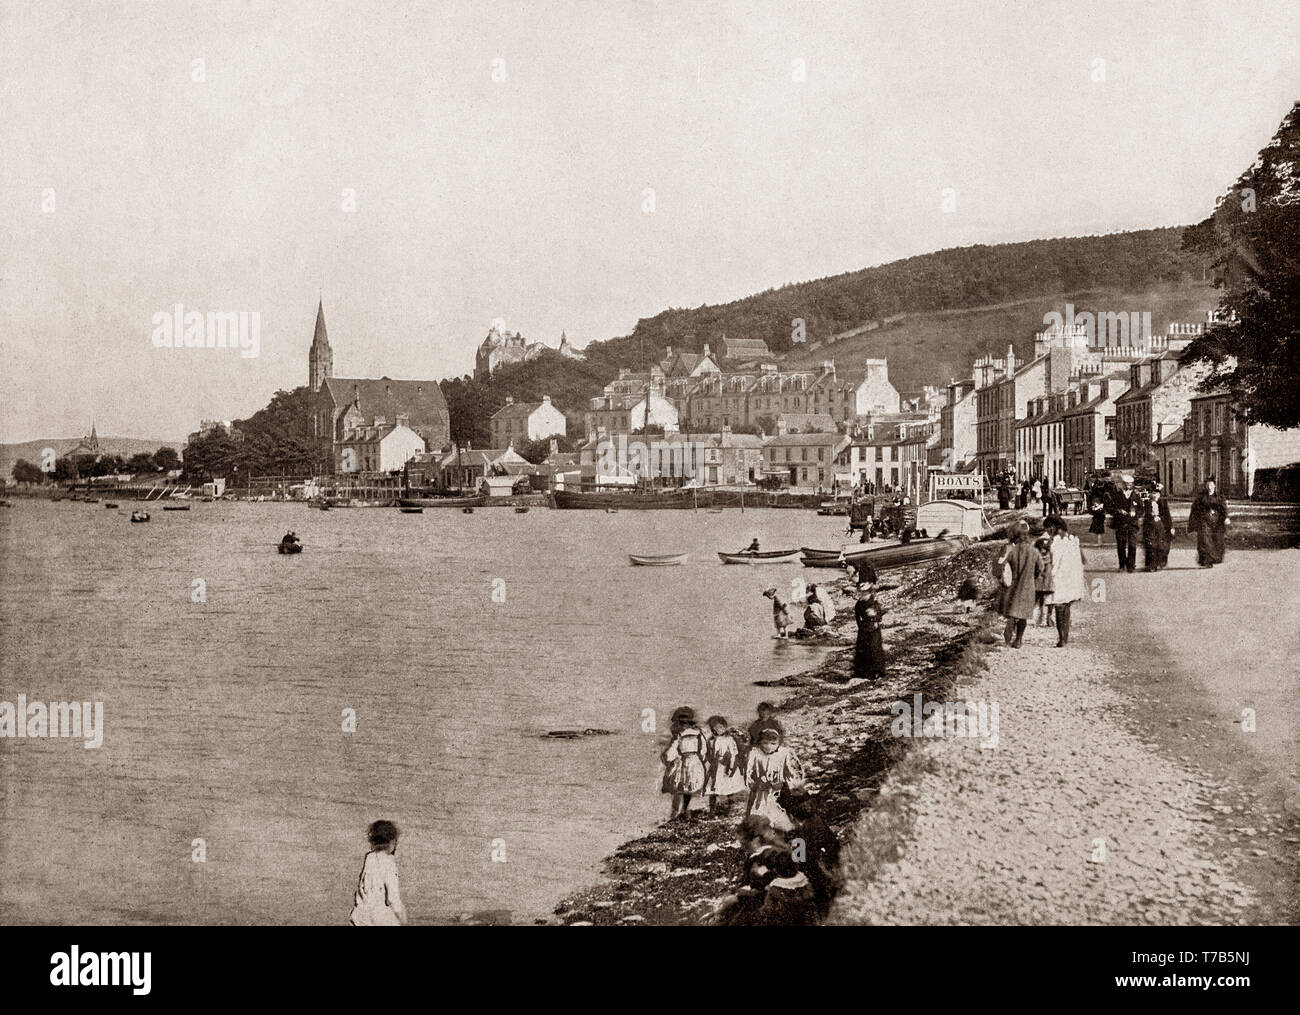 A late 19th Century view of the seafront at Port Bannatyne on the Isle of Bute, Firth of Clyde, Scotland. The village started in 1801 with the building of a small harbour on Kames Bay. Lord Bannatyne of Kames Castle, at the head of the bay, planned the village in an attempt to rival Rothesay. Initially known as Kamesburgh, by the mid-19th century, steamers were calling there regularly. In 1860 the Marquess of Bute purchased this part of the island and renamed the village Port Bannatyne in honour of the long historical association of the Bannatyne family with the area. - Stock Image